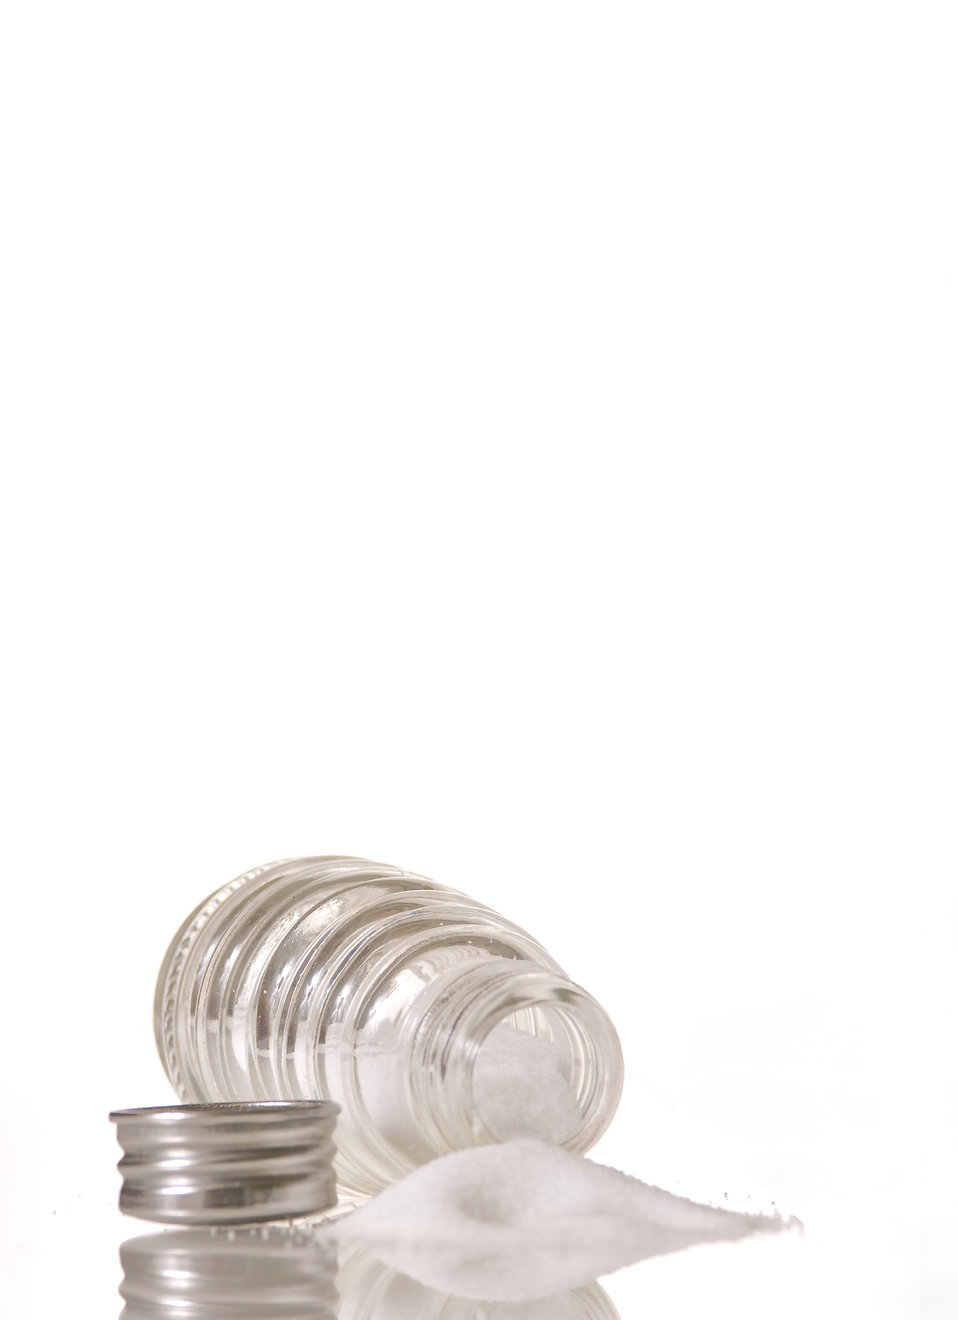 A spilled glass salt shaker : Free Stock Photo